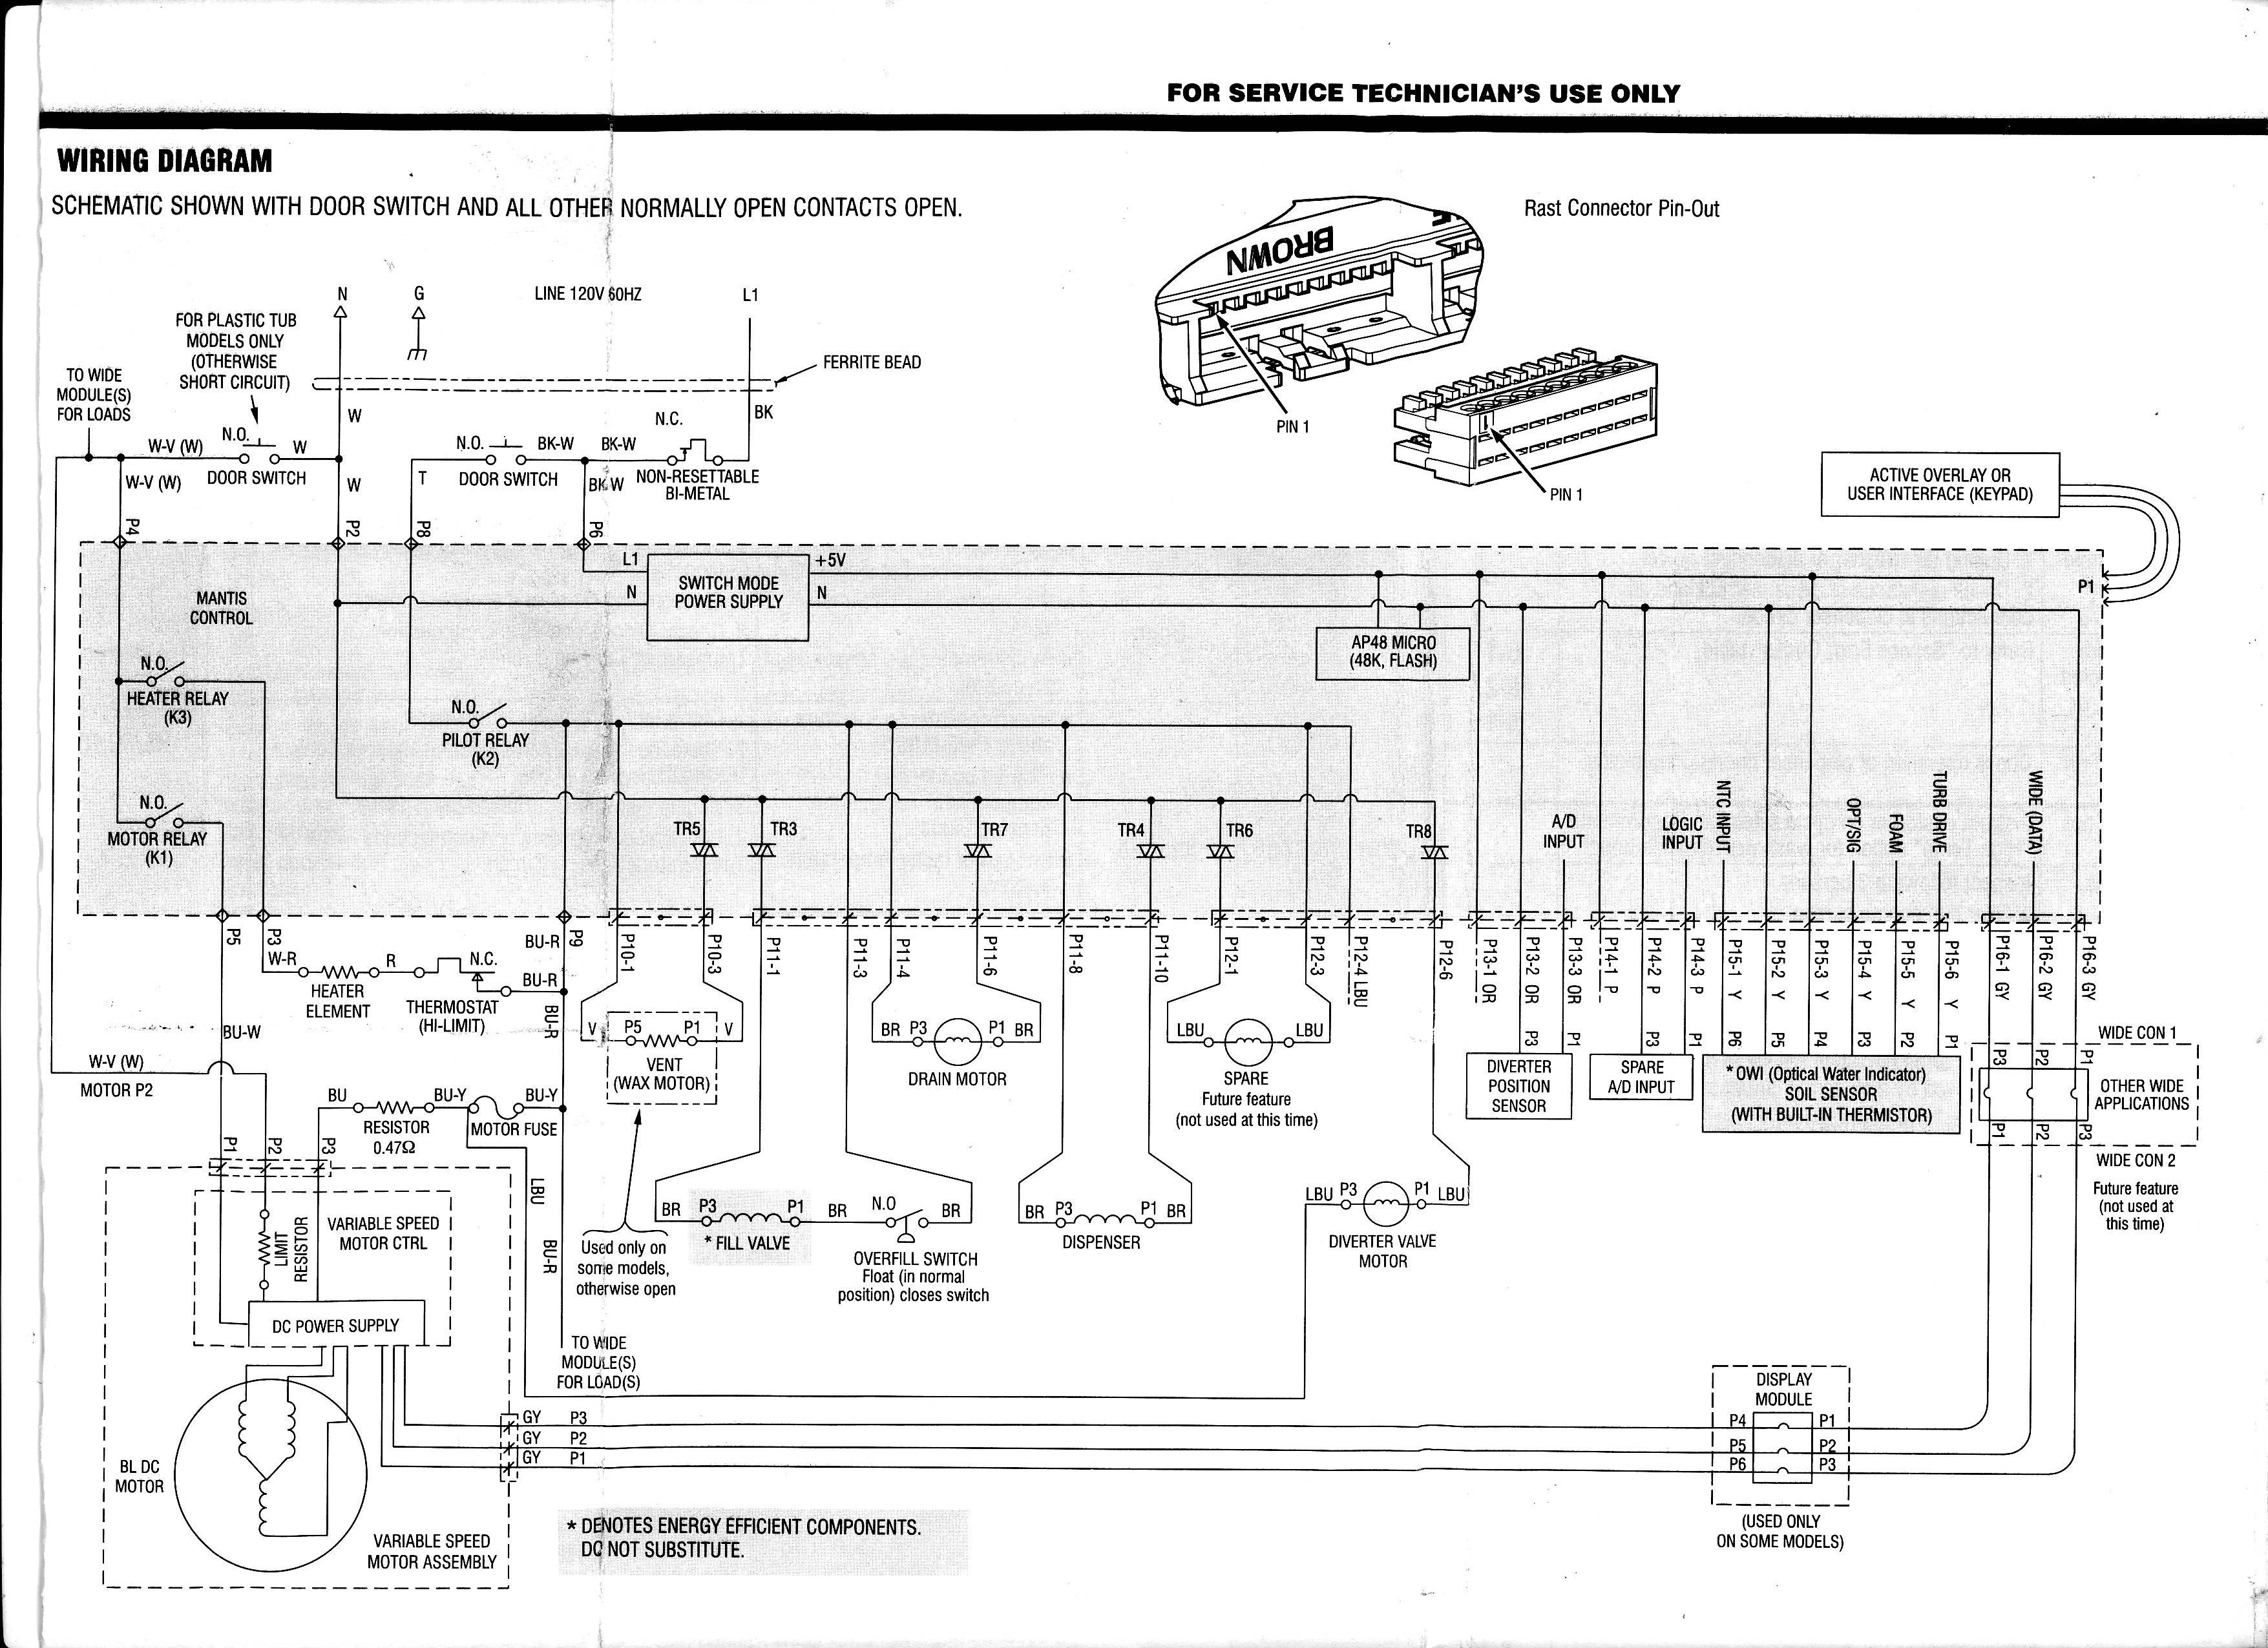 load center wiring diagram download